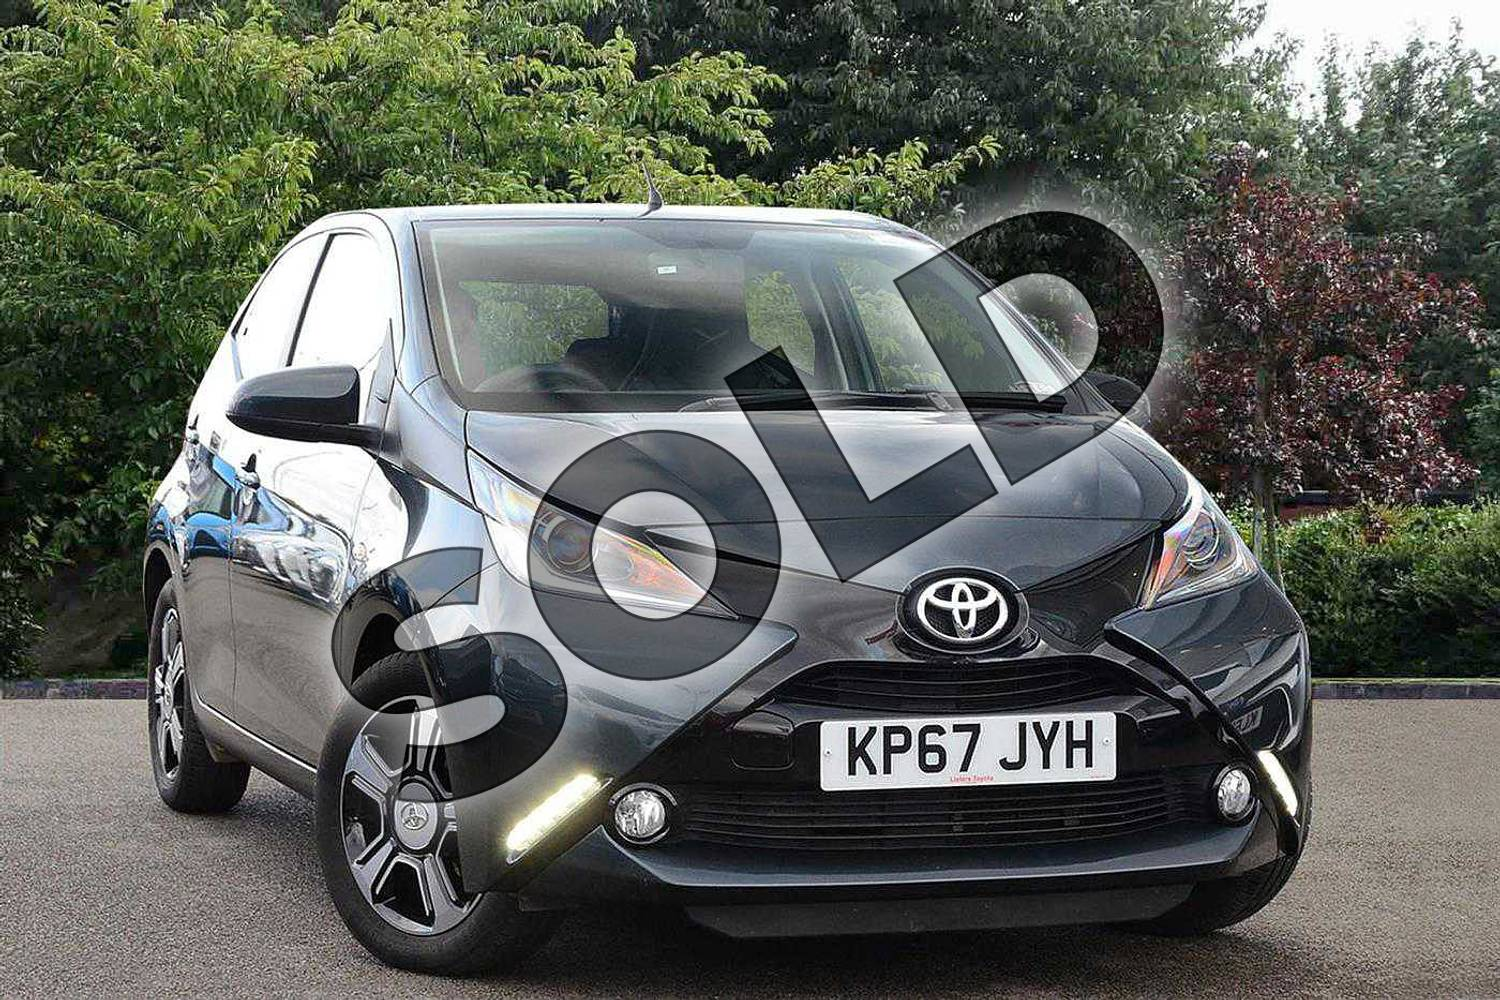 2017 Toyota AYGO Hatchback Special Editions Special Editions 1.0 VVT-i X-Clusiv 3 5dr in Grey at Listers Toyota Nuneaton